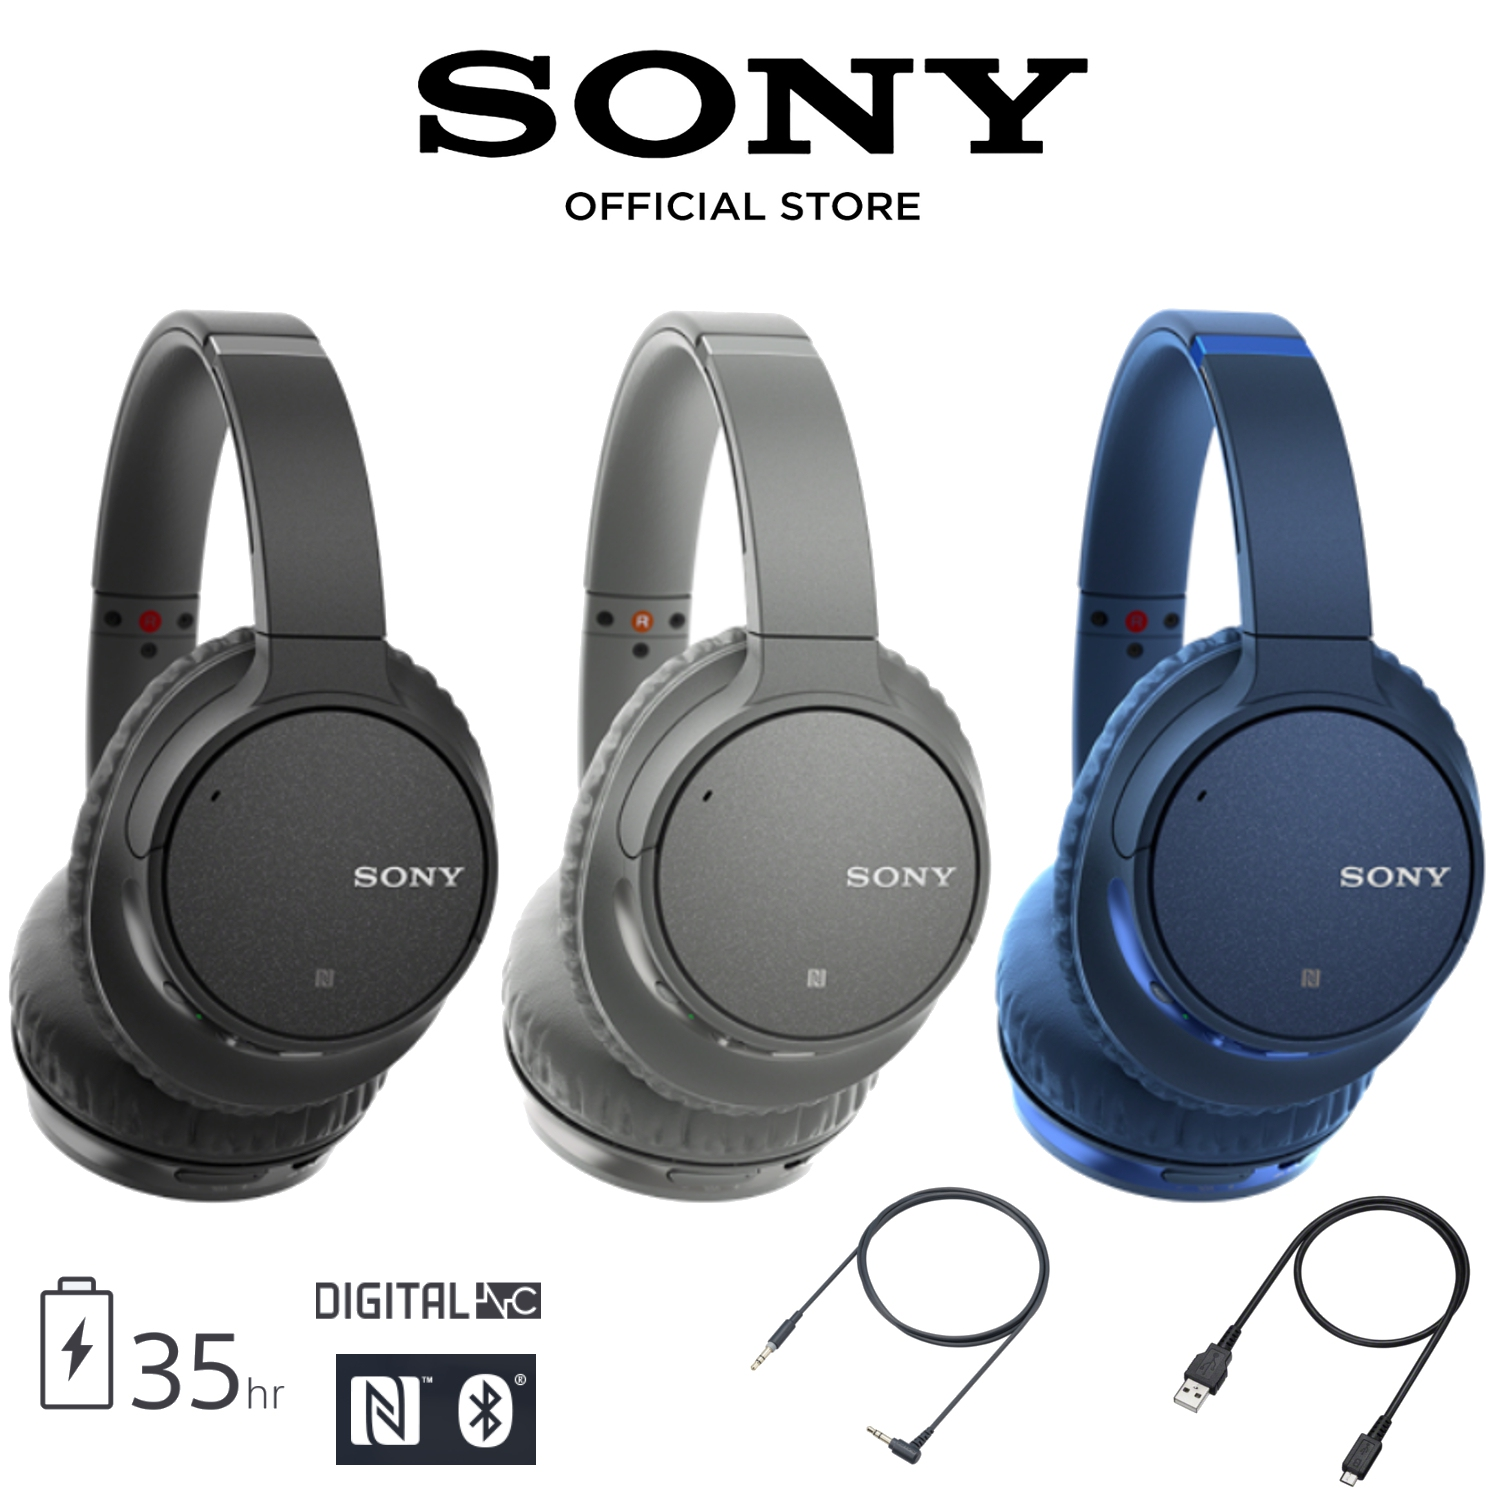 Sony bluetooth headphones mdrxb950 - sony headphones case wh-ch700n